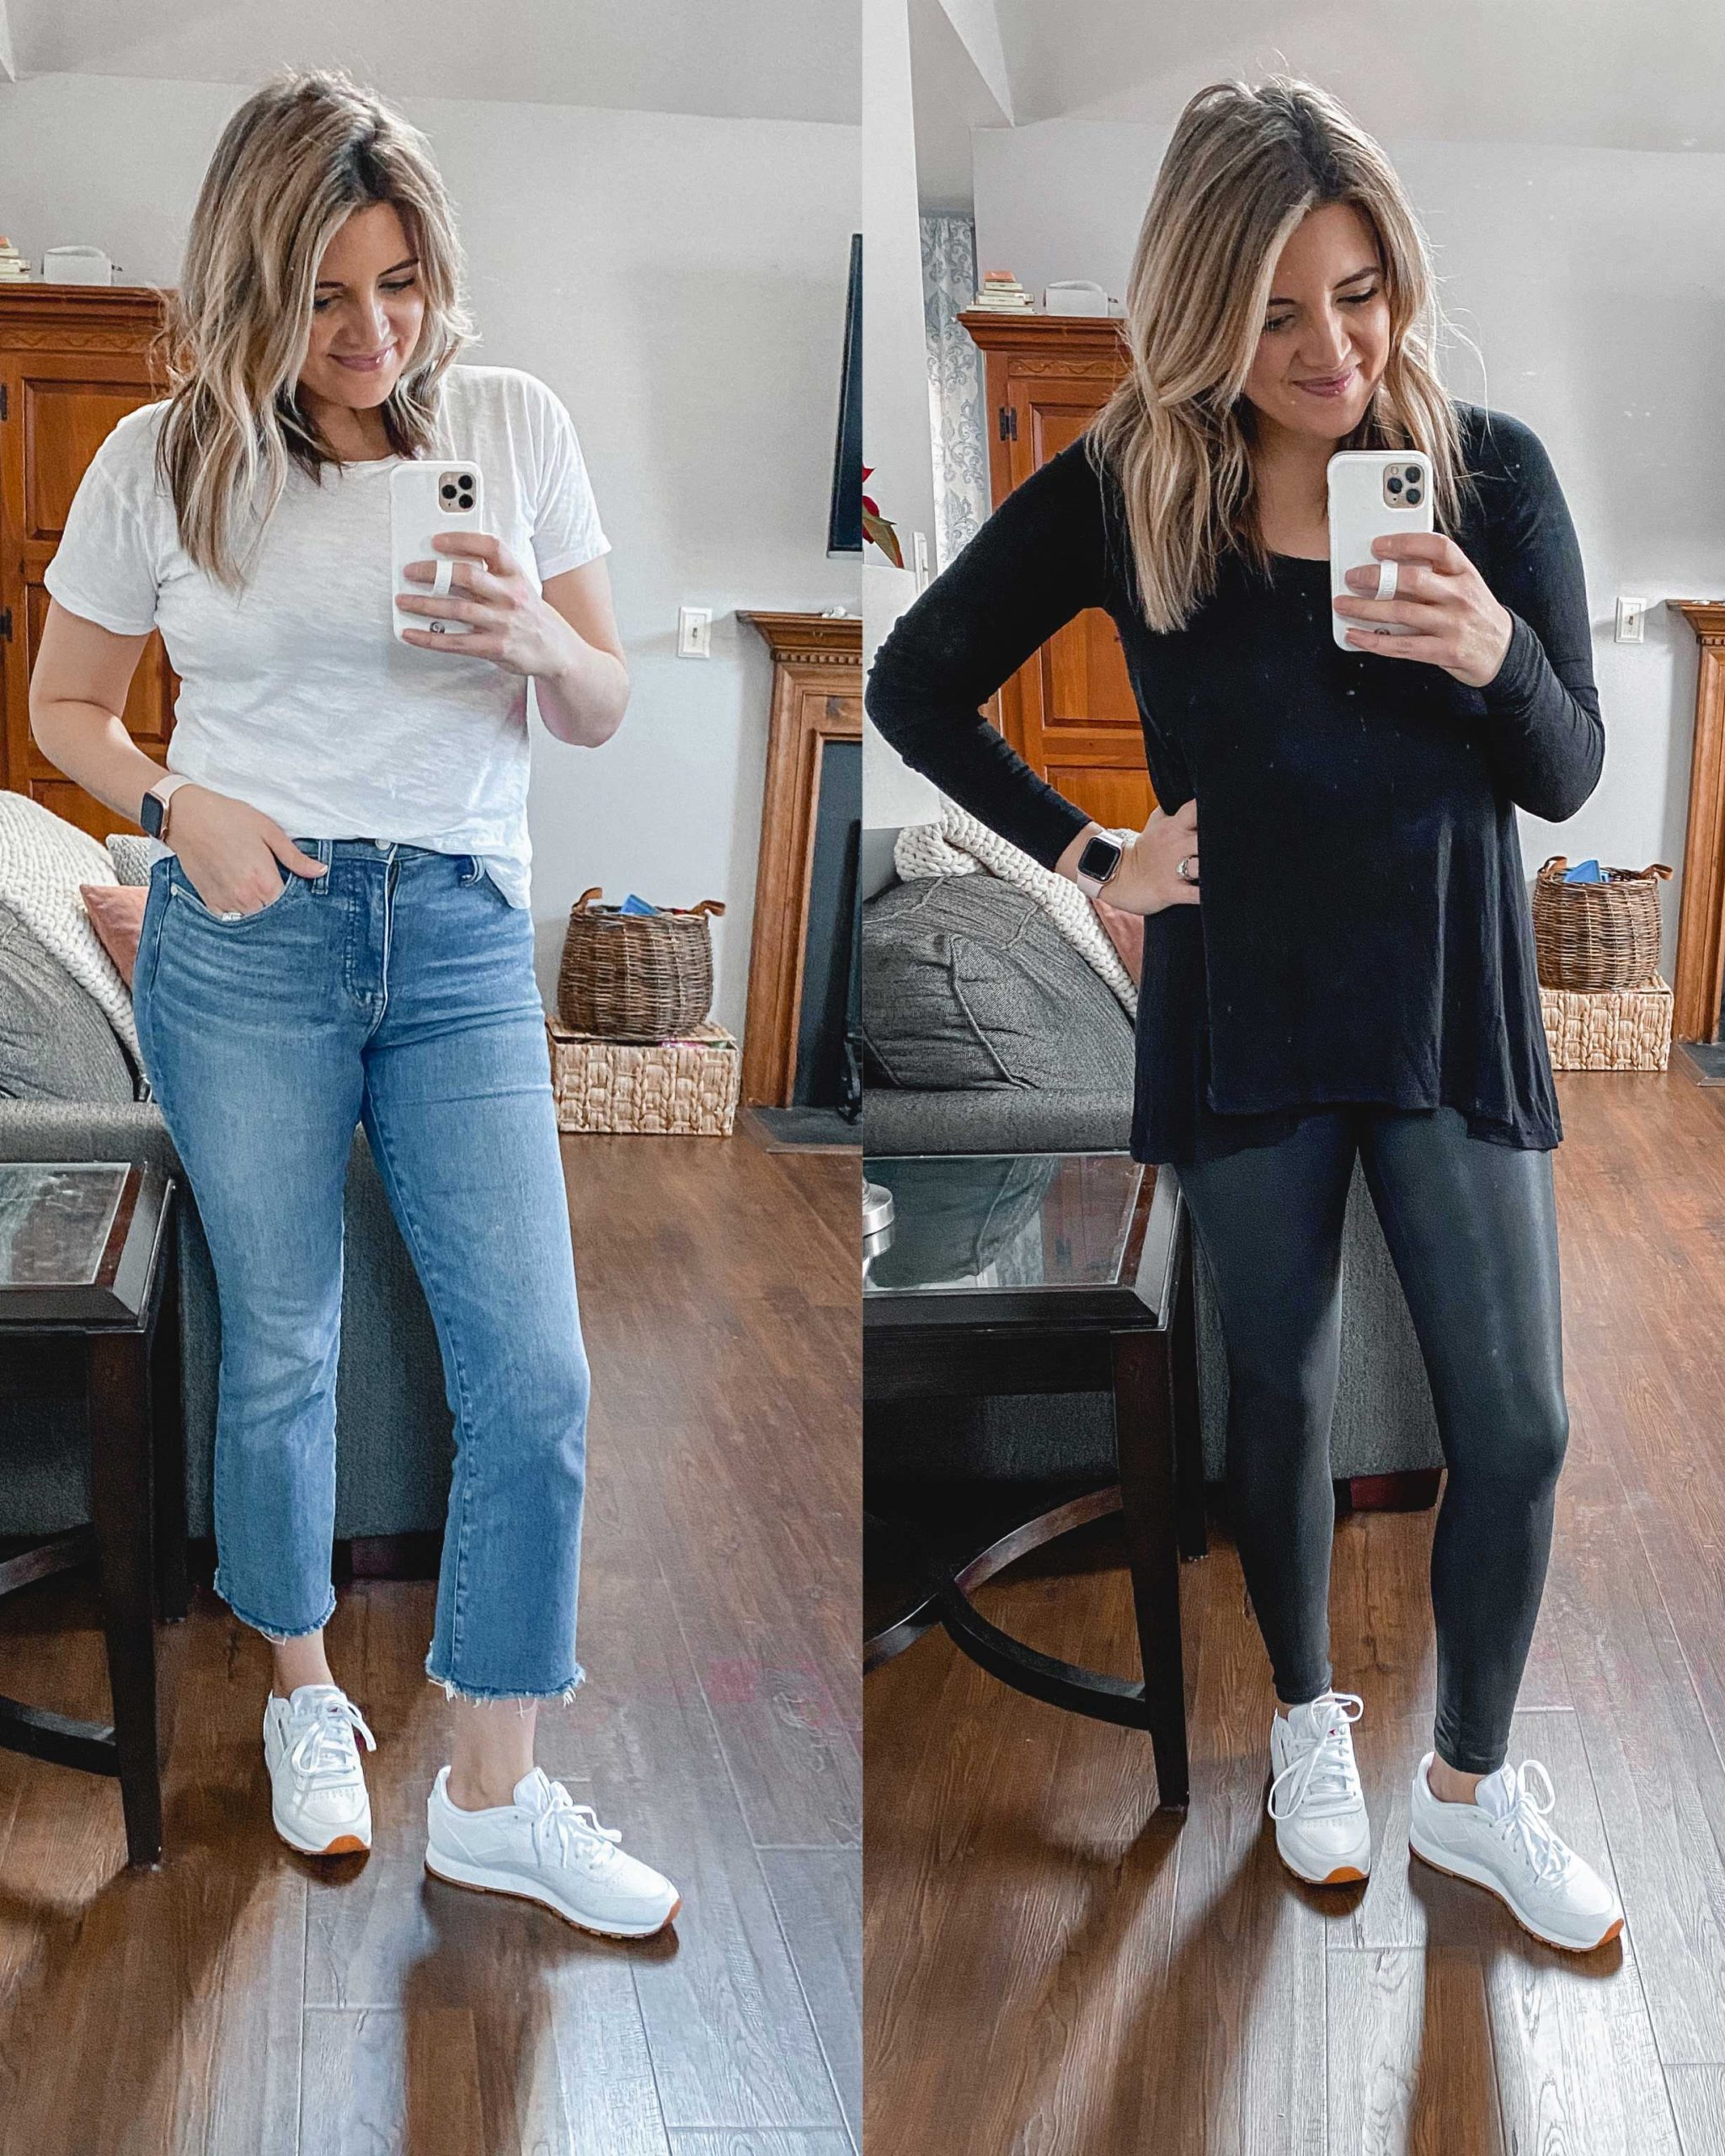 Virginia blogger, Lauren Dix, tries on 10 different pairs of white sneakers for the ultimate white sneaker review! She wears the Reebok Classic Leather sneakers with both jeans and leggings!